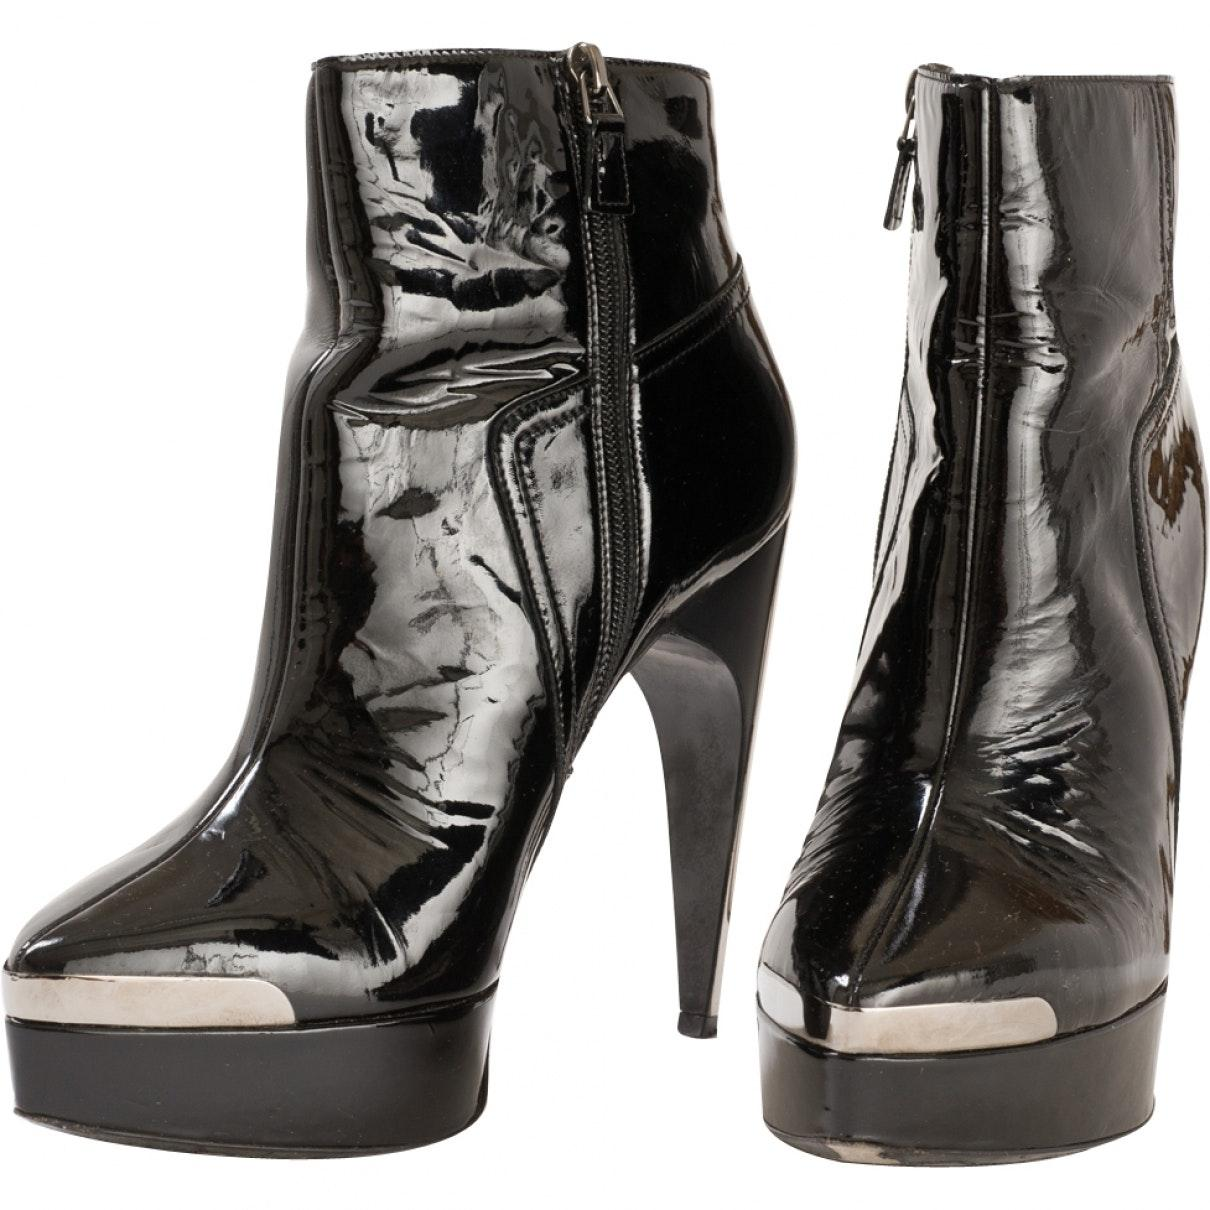 Lanvin n Black Patent Leather Ankle Boots